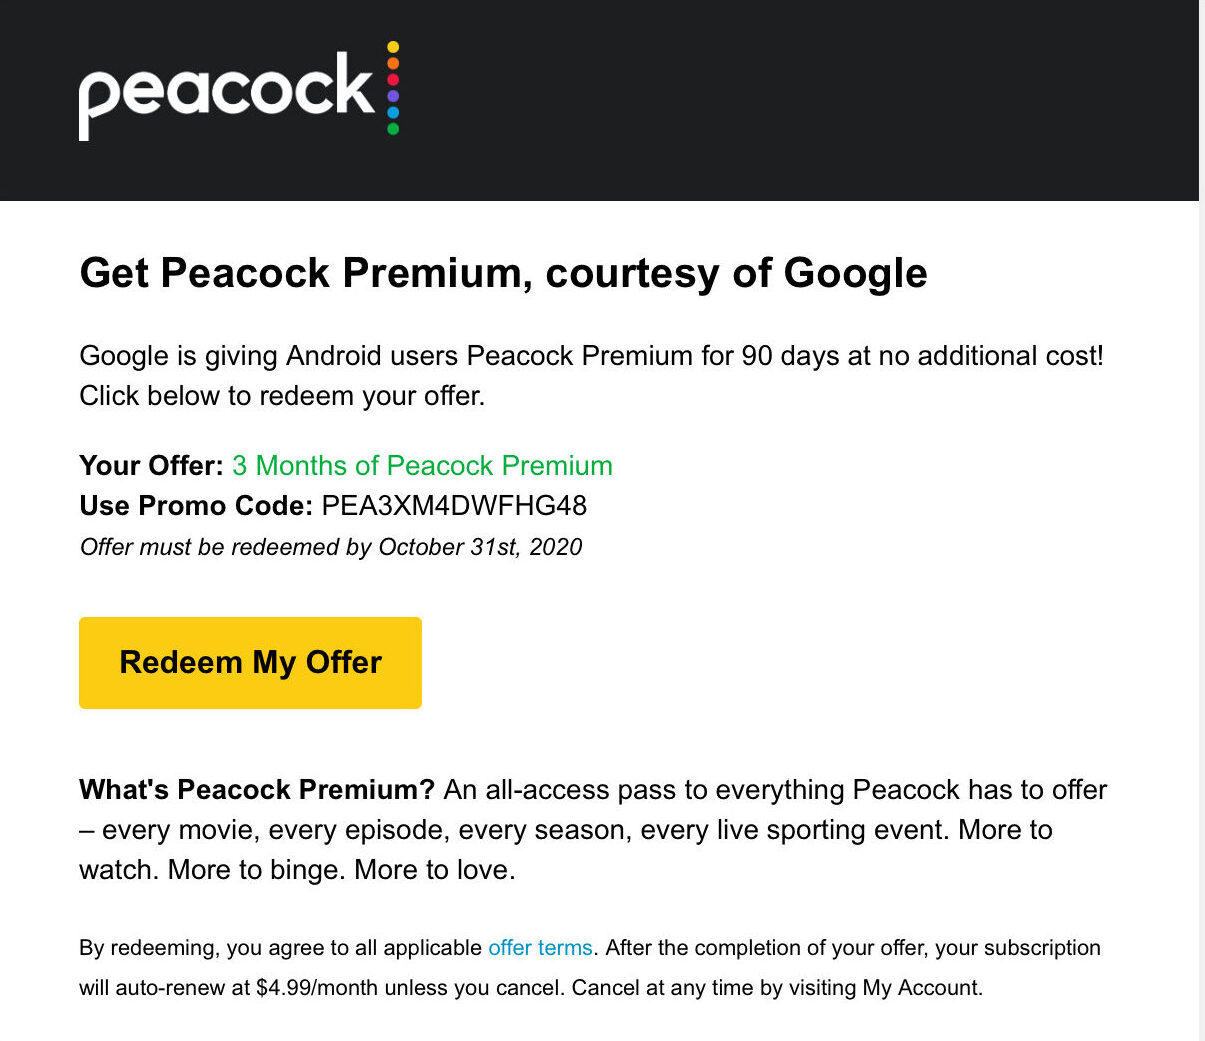 Peacock will send you an email to confirm.